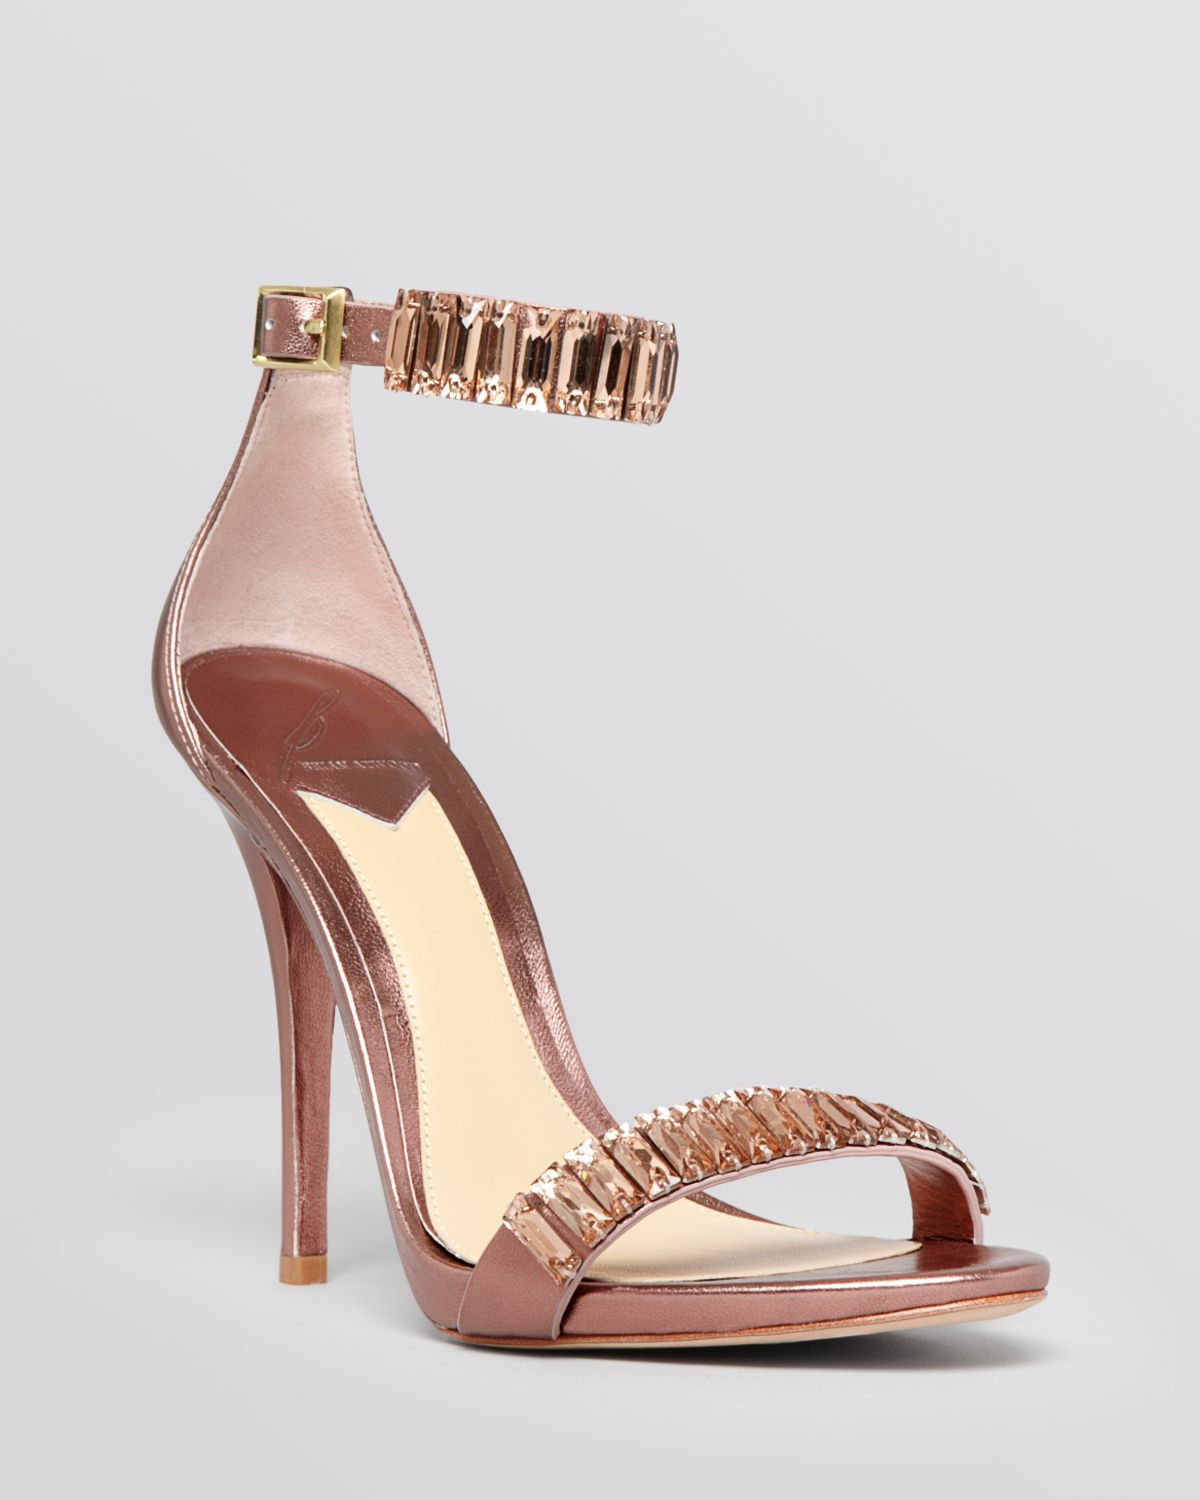 B brian atwood Open Toe Sandals - Ciara Beaded High Heel in Pink ...